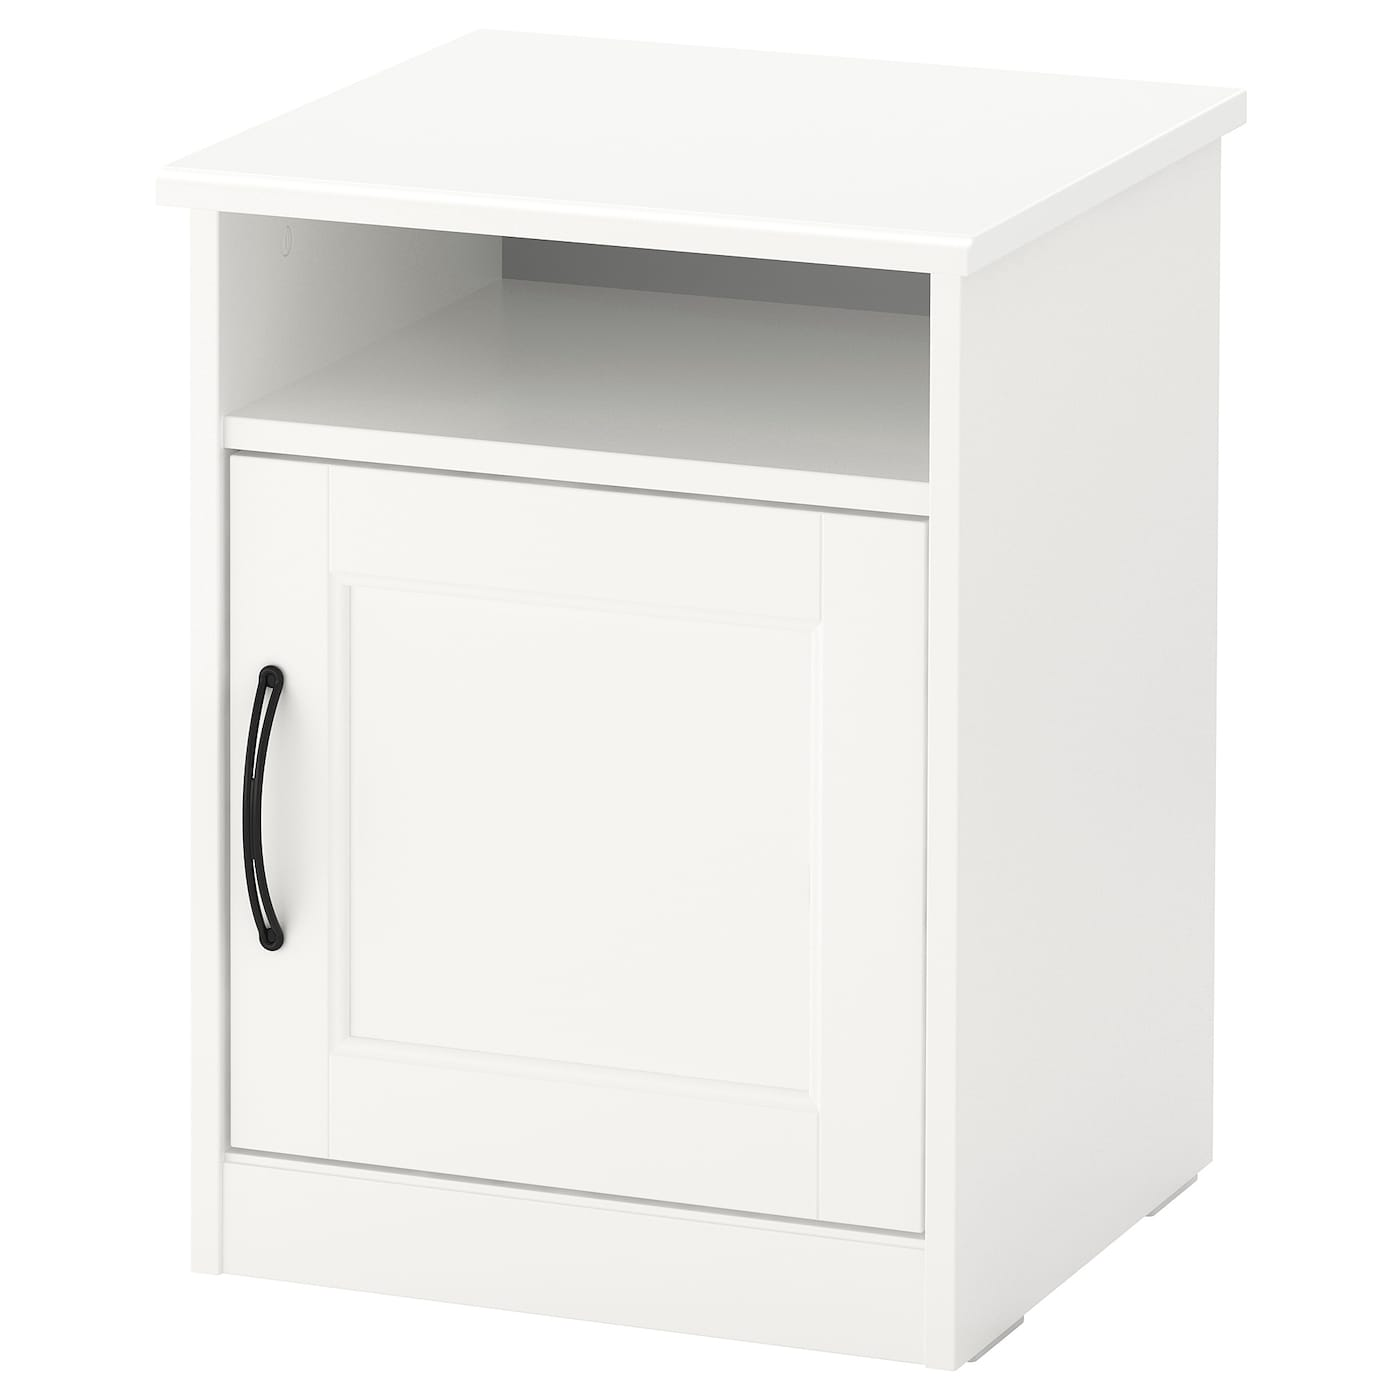 IKEA SONGESAND bedside table The door can be hung with the opening to the right or the left.